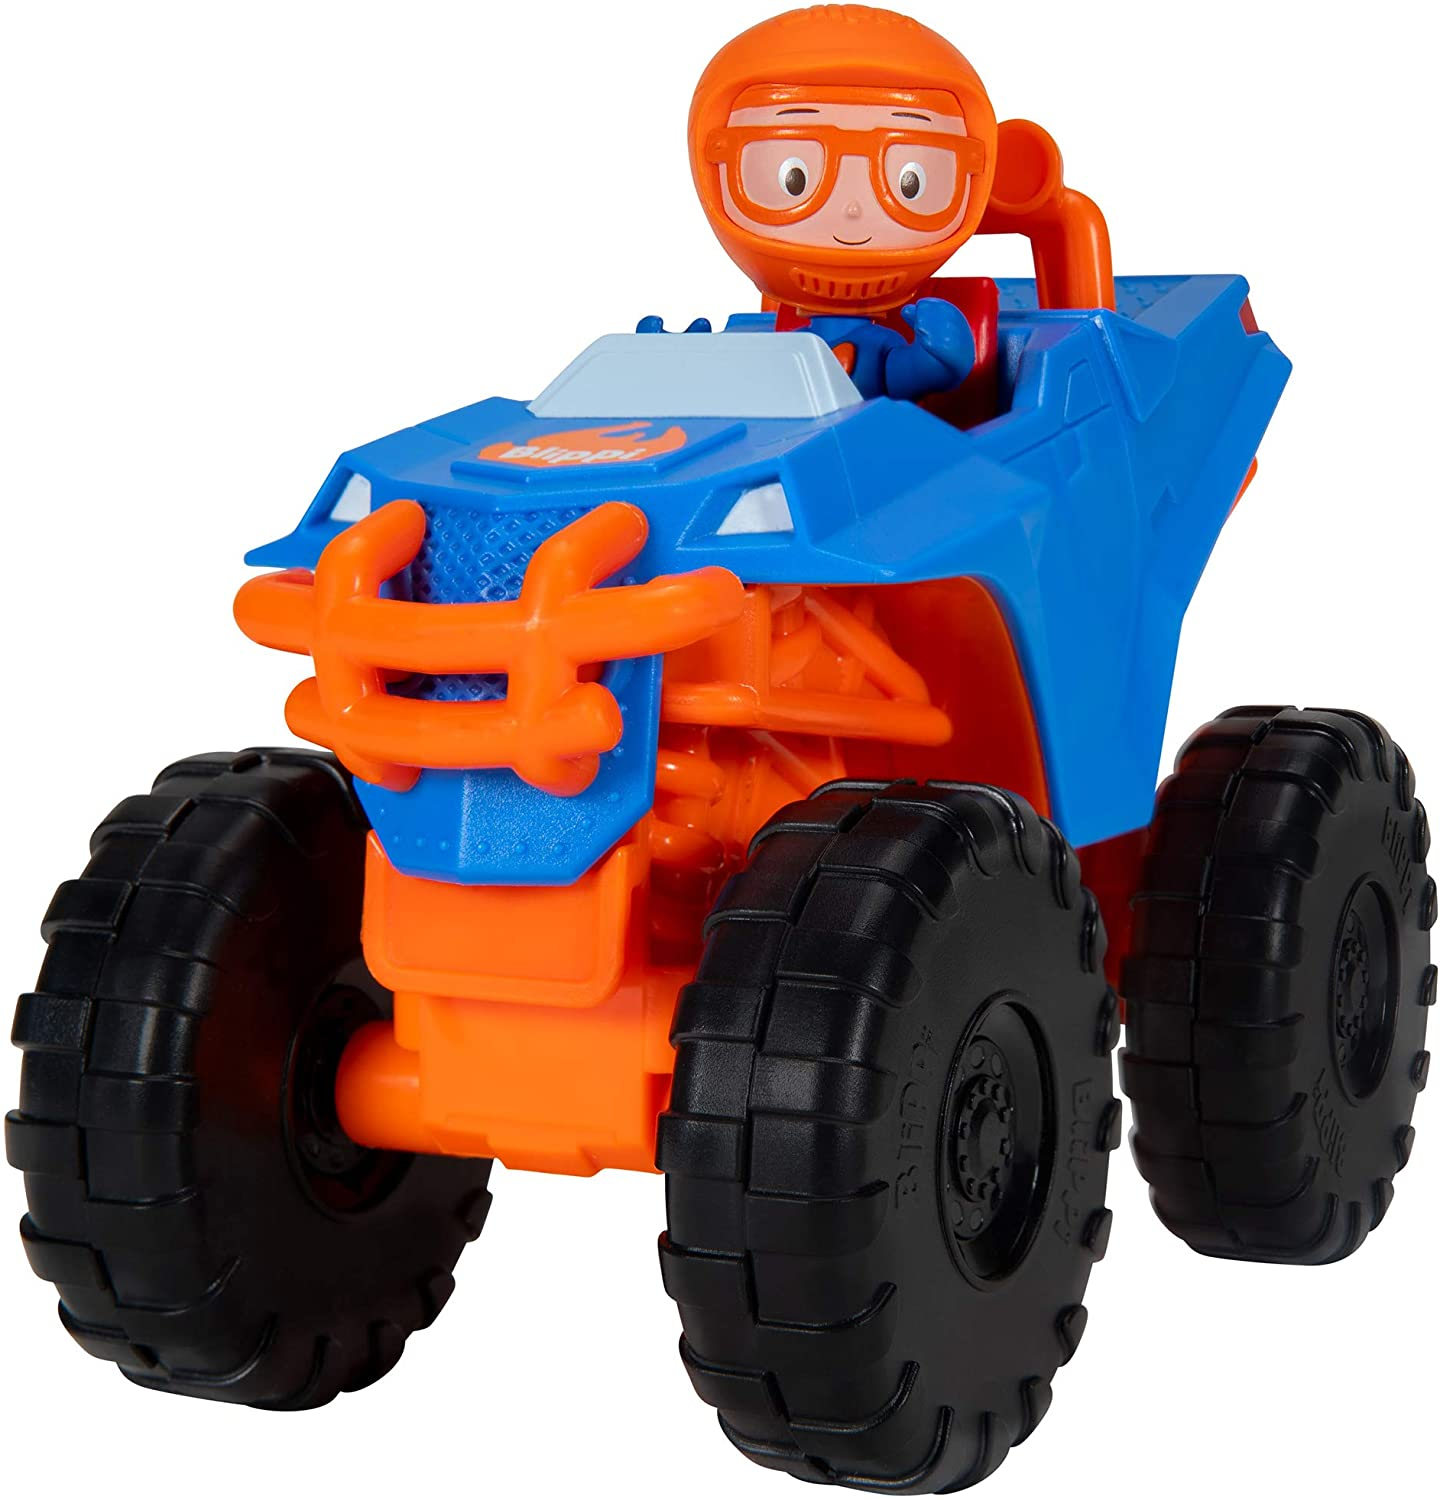 "Blippi Monster Truck Mobile - Mini Vehicle with Freewheeling Features Including 2"" Character Toy Figure and Cool Hydraulics - Imaginative Play for Toddlers and Young Children"